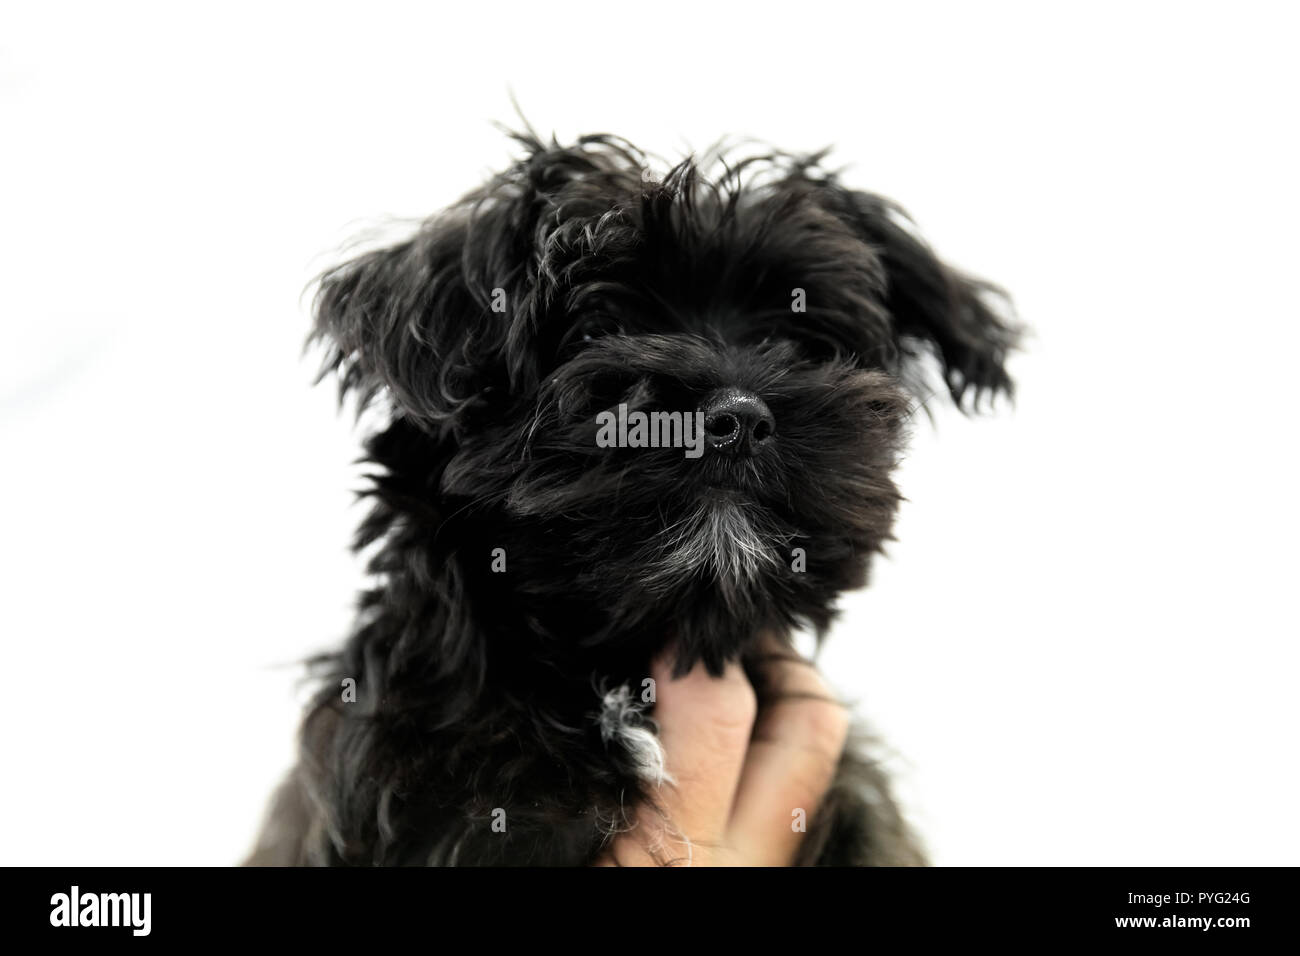 black Yorktese puppy on white background with copy space. Breed from Maltese and Yorkshire Terrier dogs. - Stock Image